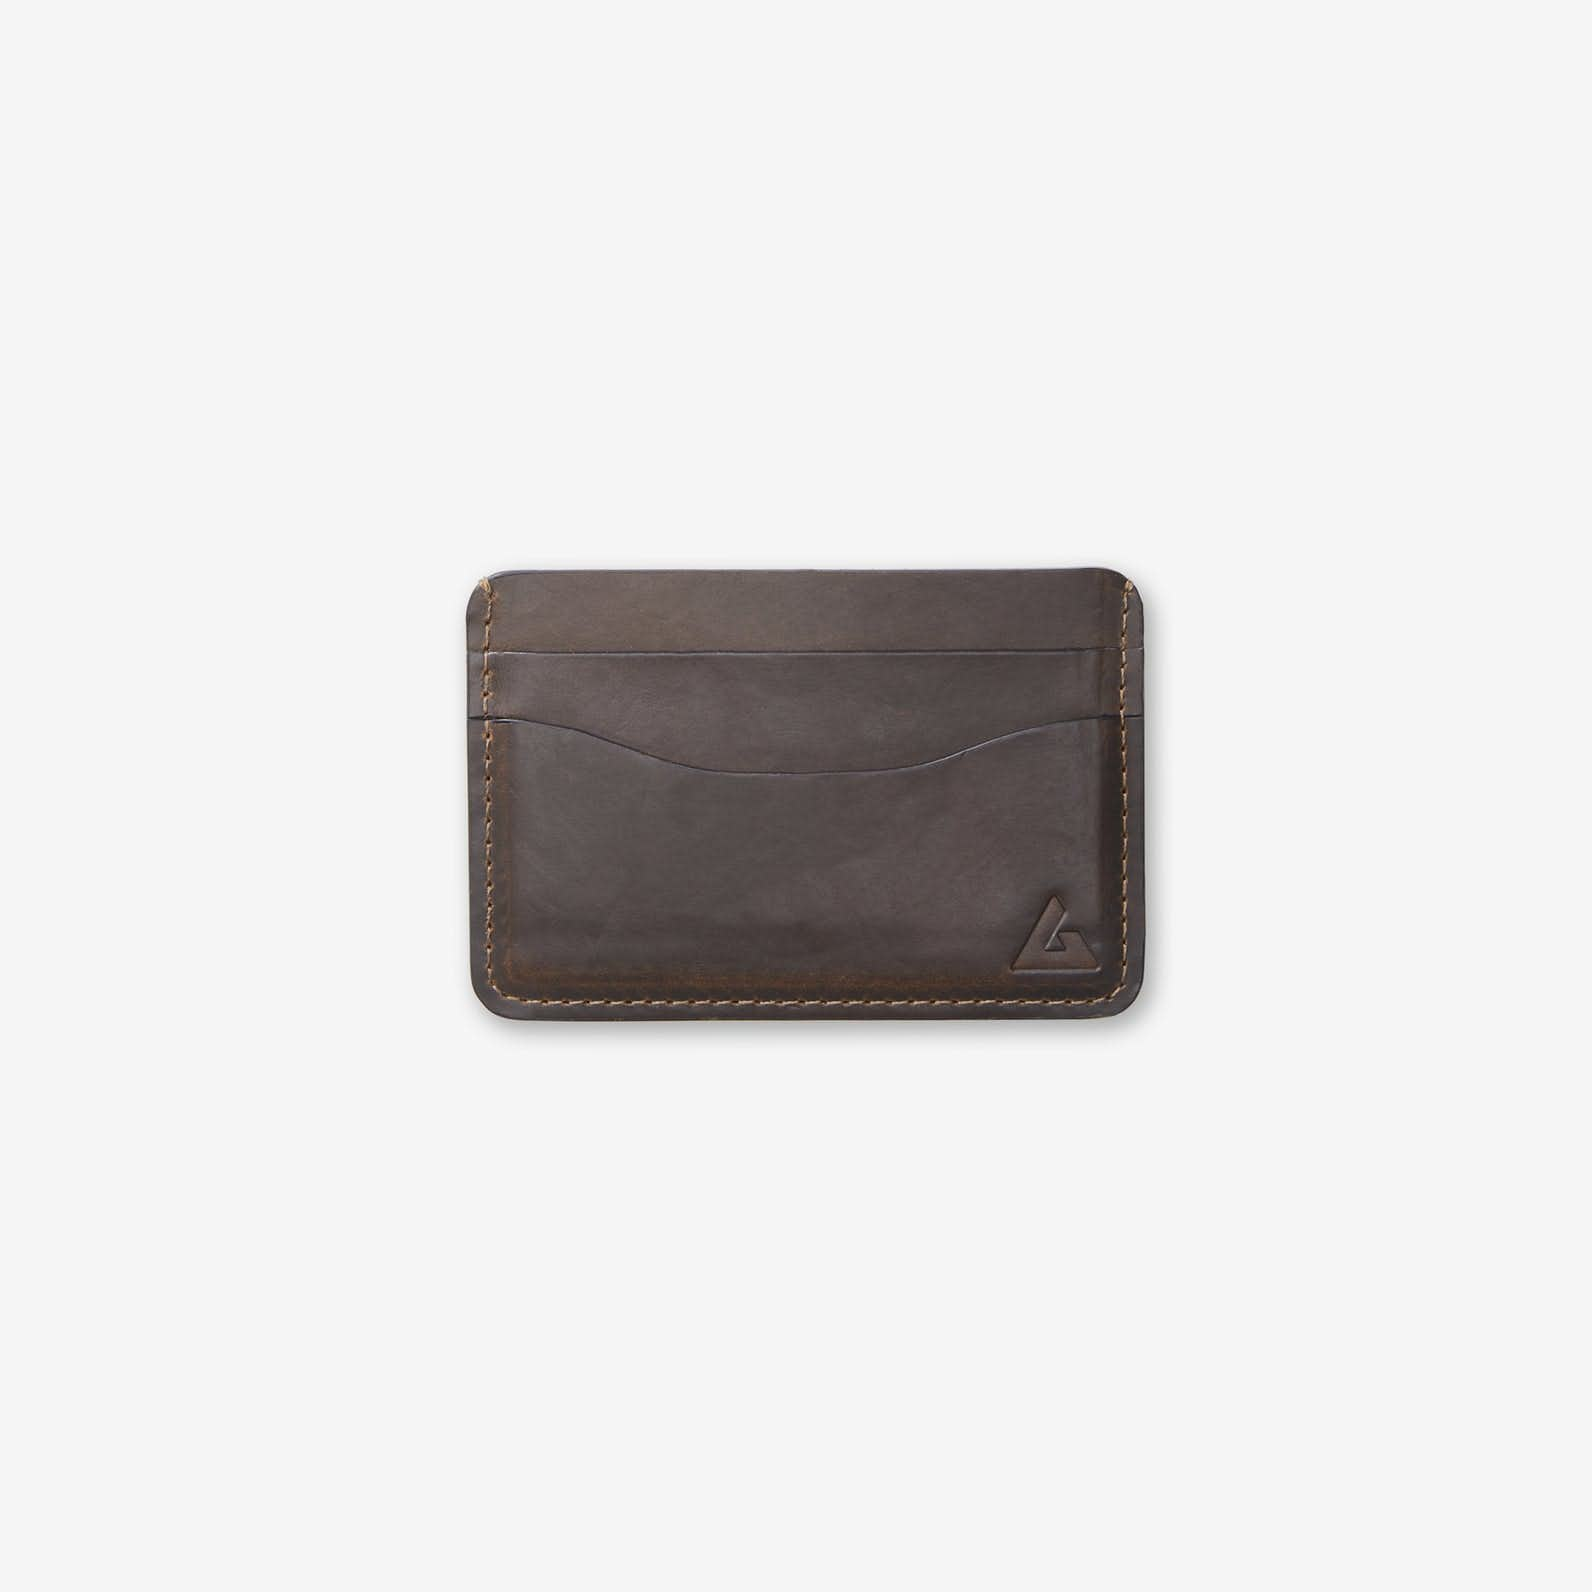 Horween Leather Card Wallet - Tobacco